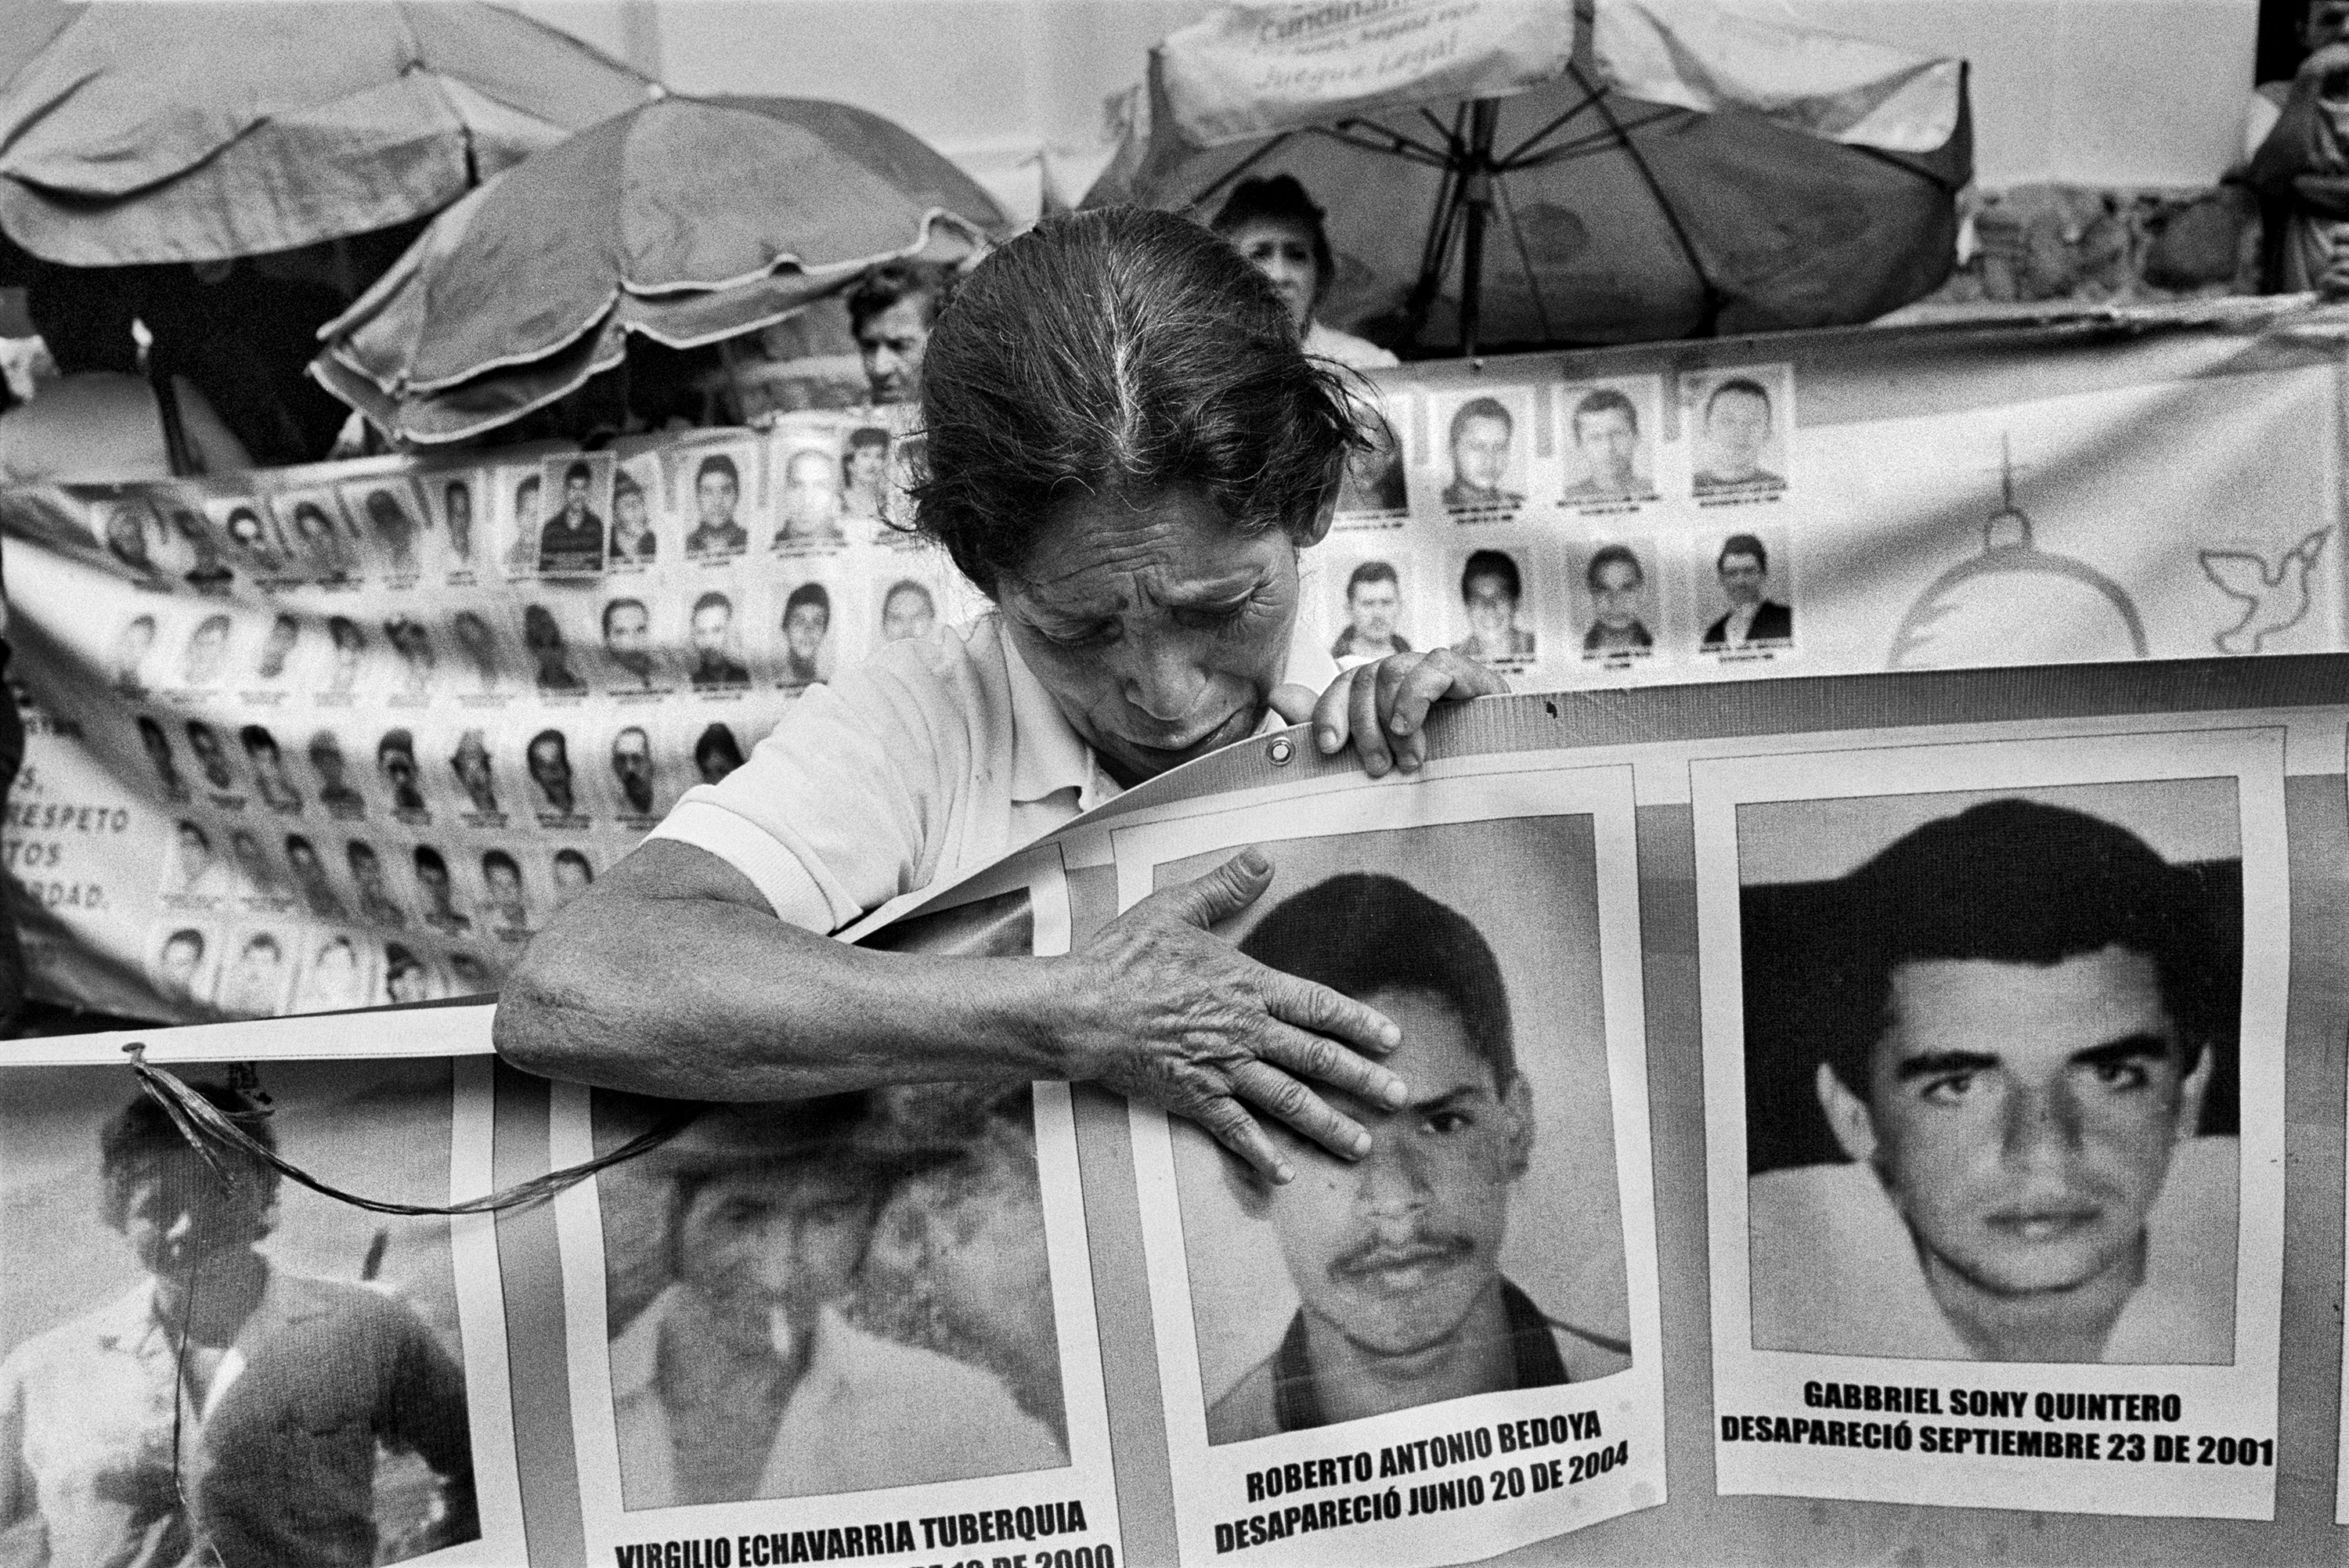 A mother cries to a picture of her missing son during a vigil in the Center of Medellin, Colombia, Feb. 2015. Every Friday, the association of mothers of the Candelaria organizes a vigil to remember and demand the return of their missing relatives. There are more than 96,000 people missing in Colombia.